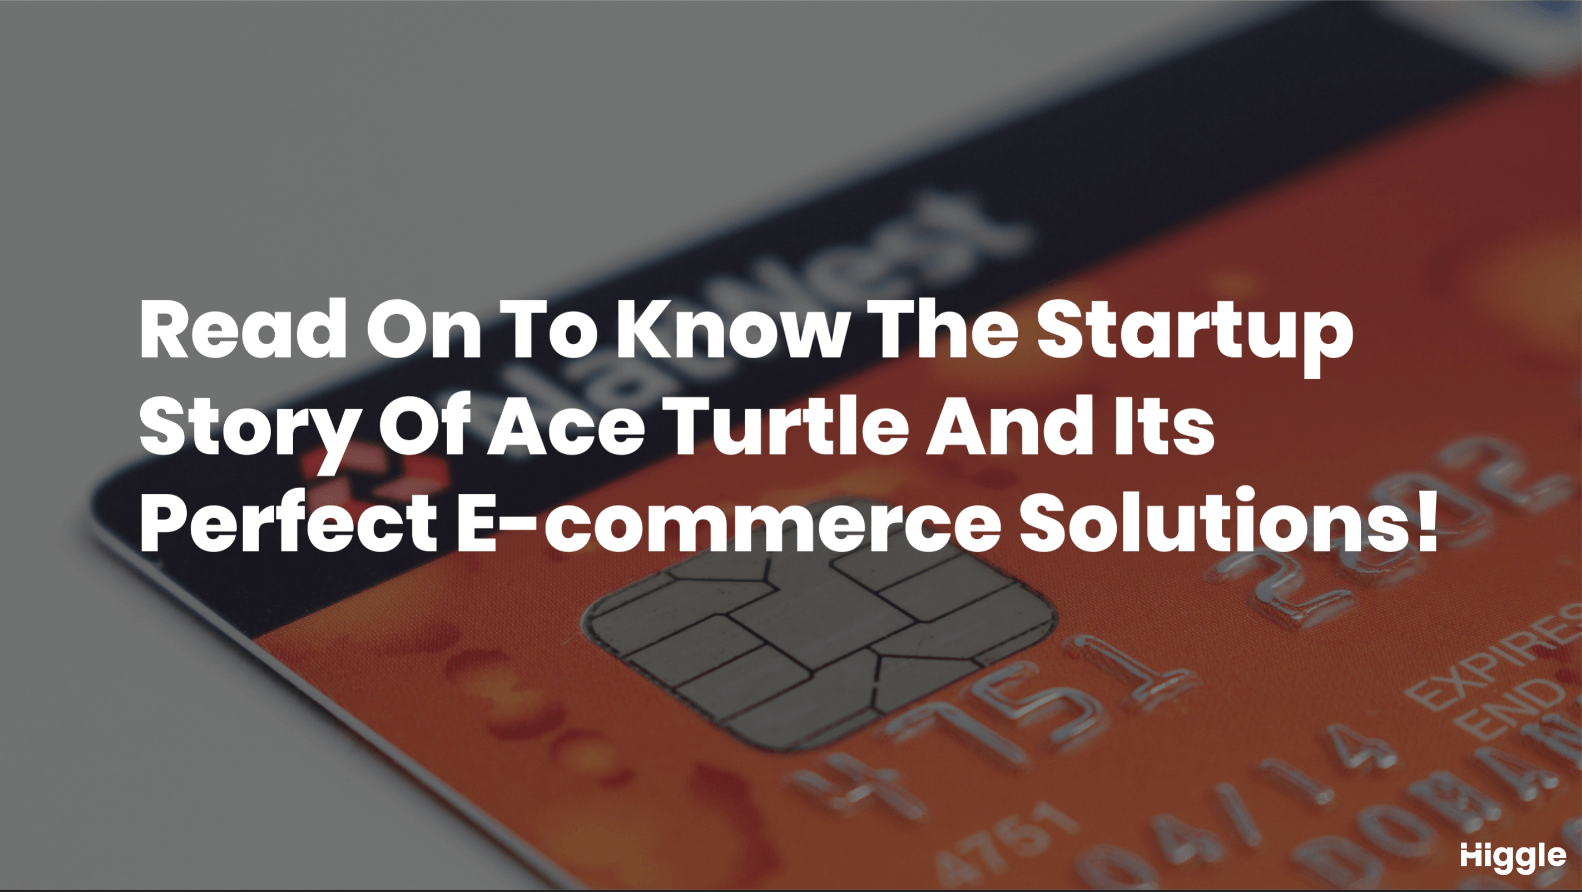 startup story of ace turtle